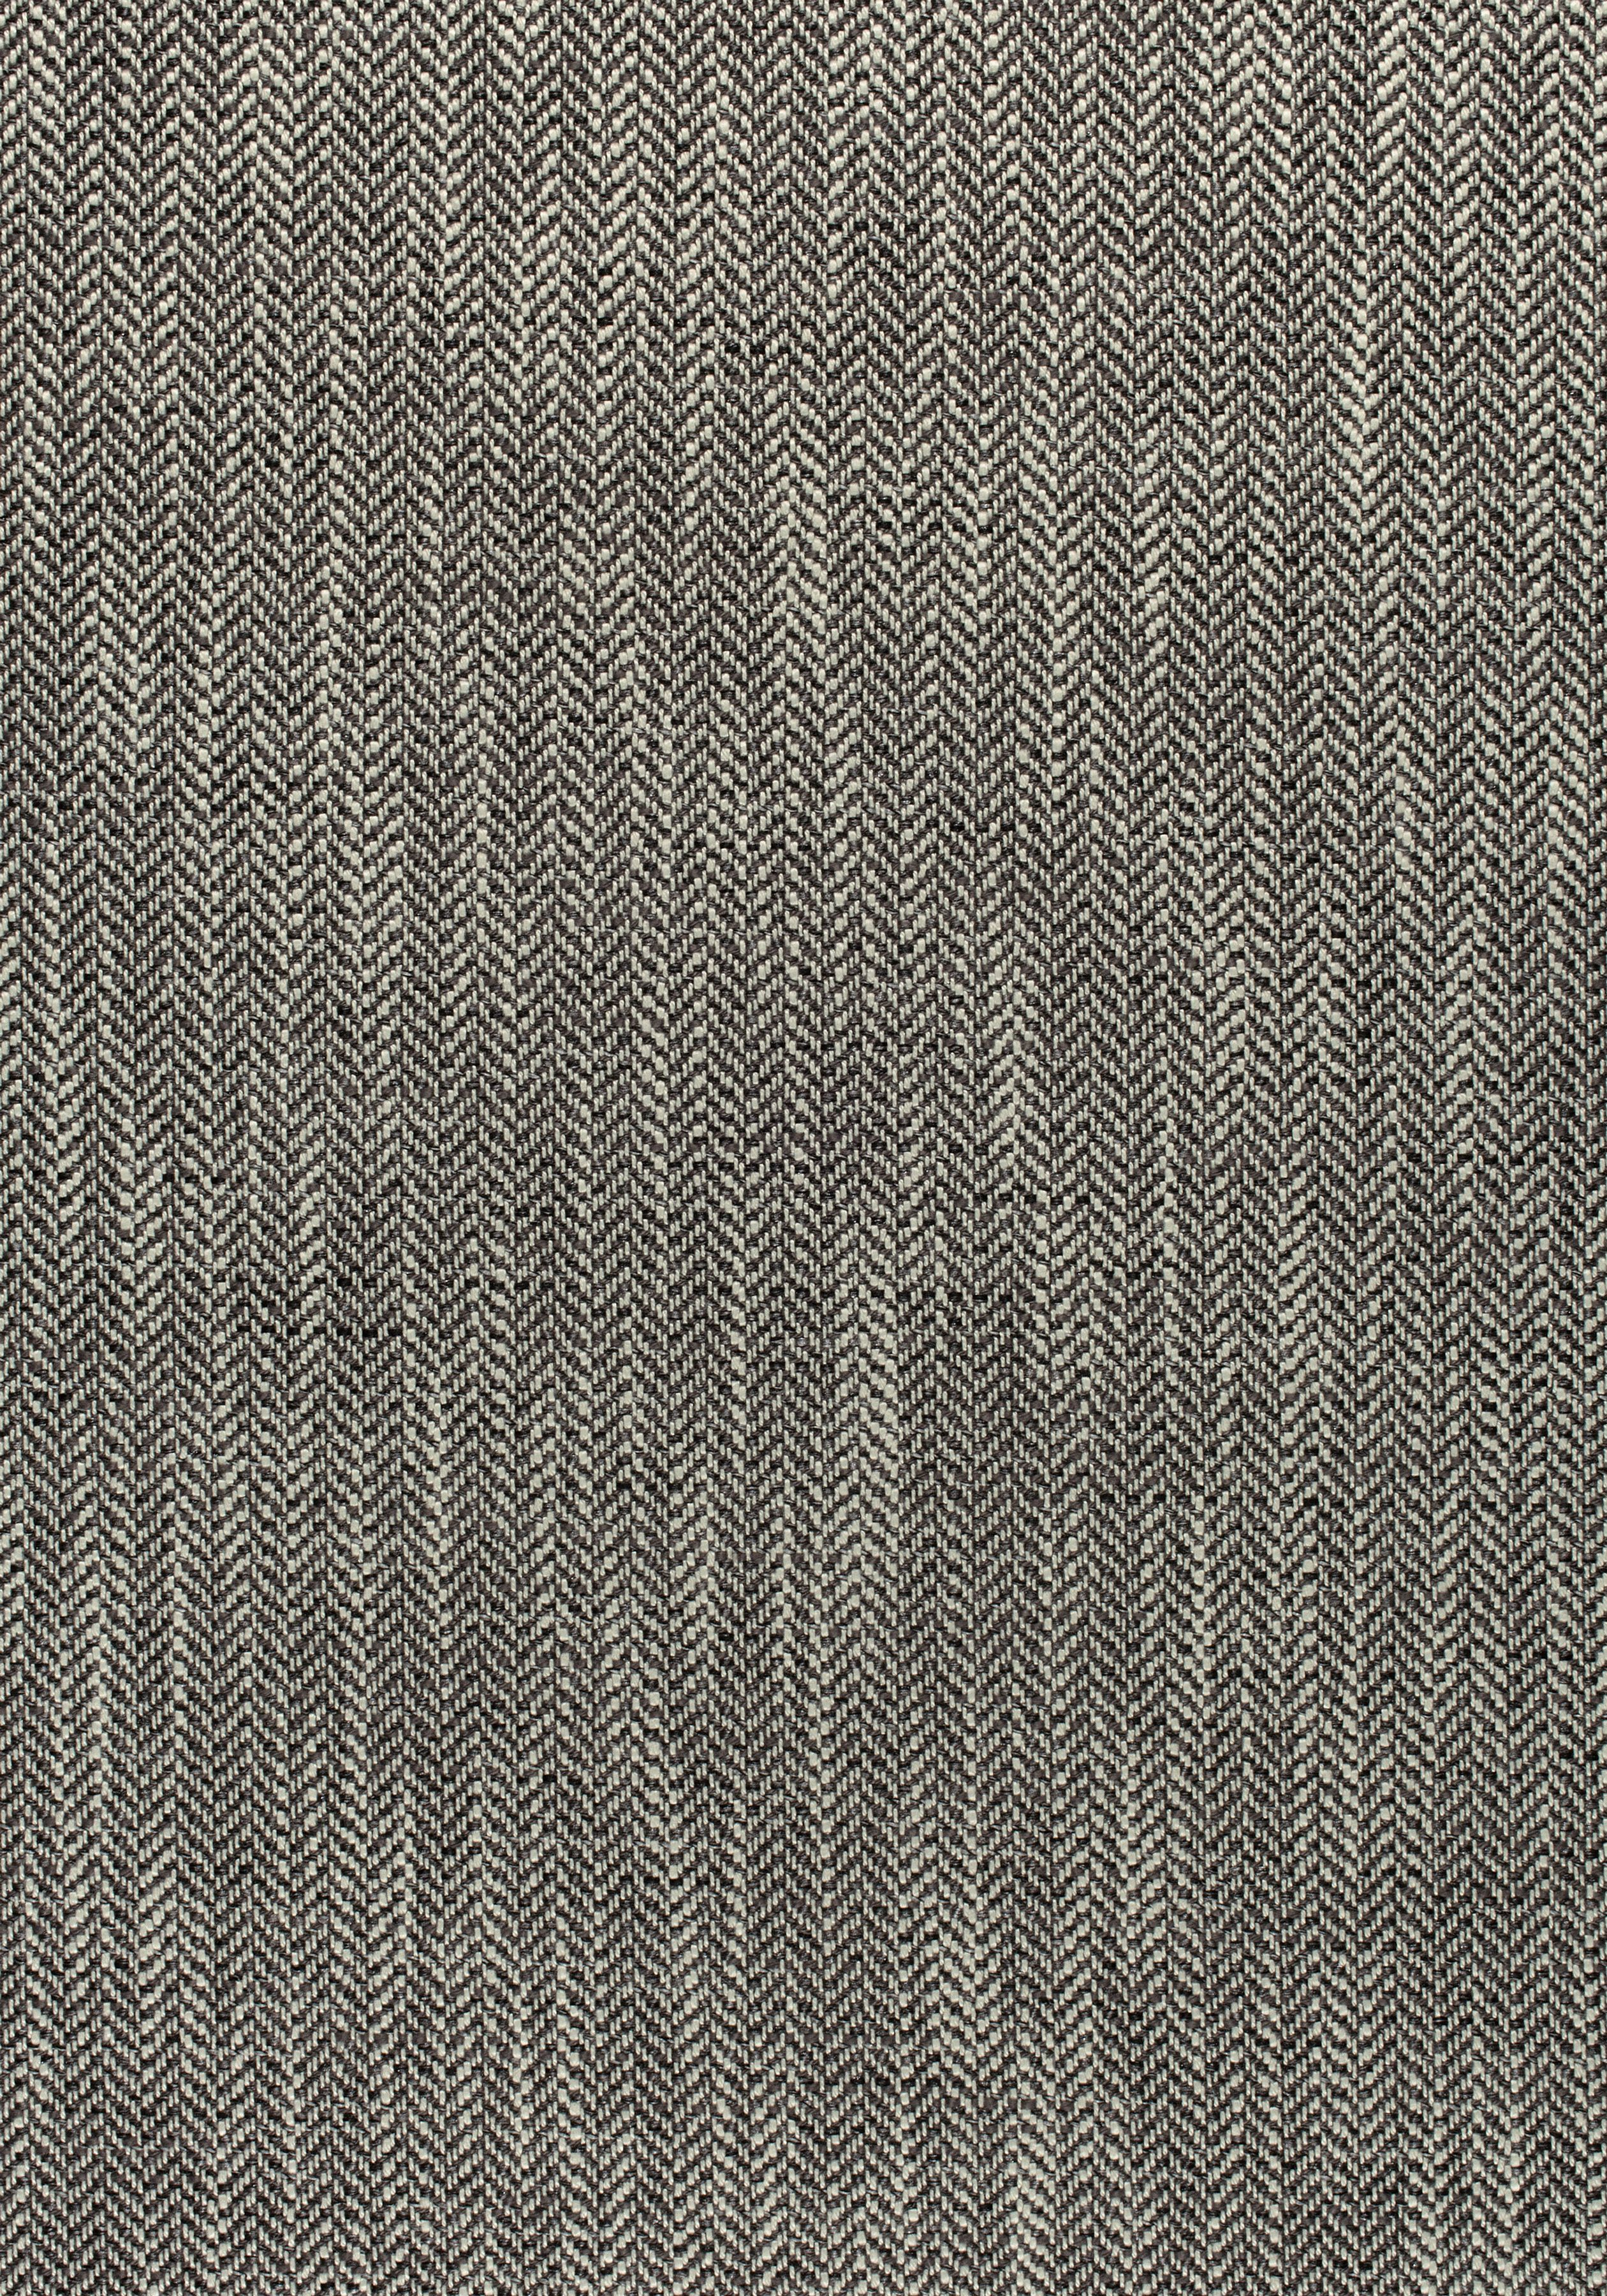 Ashbourne Tweed Charcoal W80618 Collection Pinnacle From Thibaut Fabric Textures Fabric Wallpaper Ashbourne